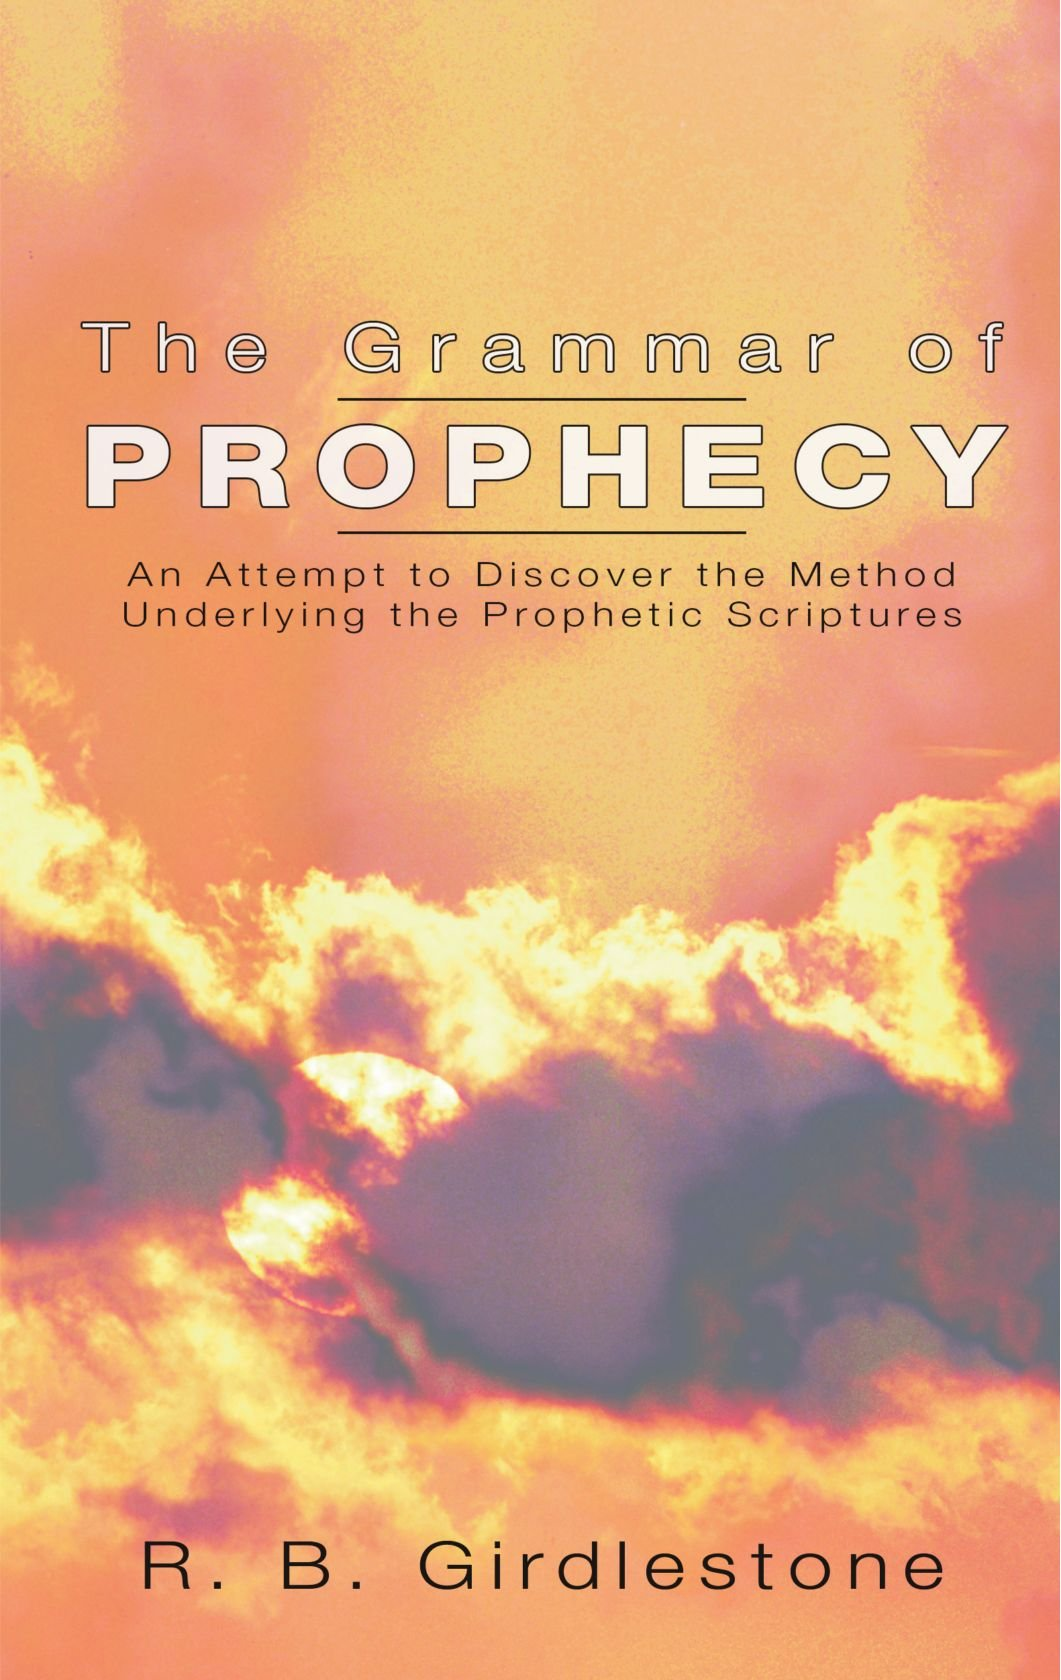 Grammar of Prophecy: An Attempt to Discover the Method Underlying the Prophetic Scriptures pdf